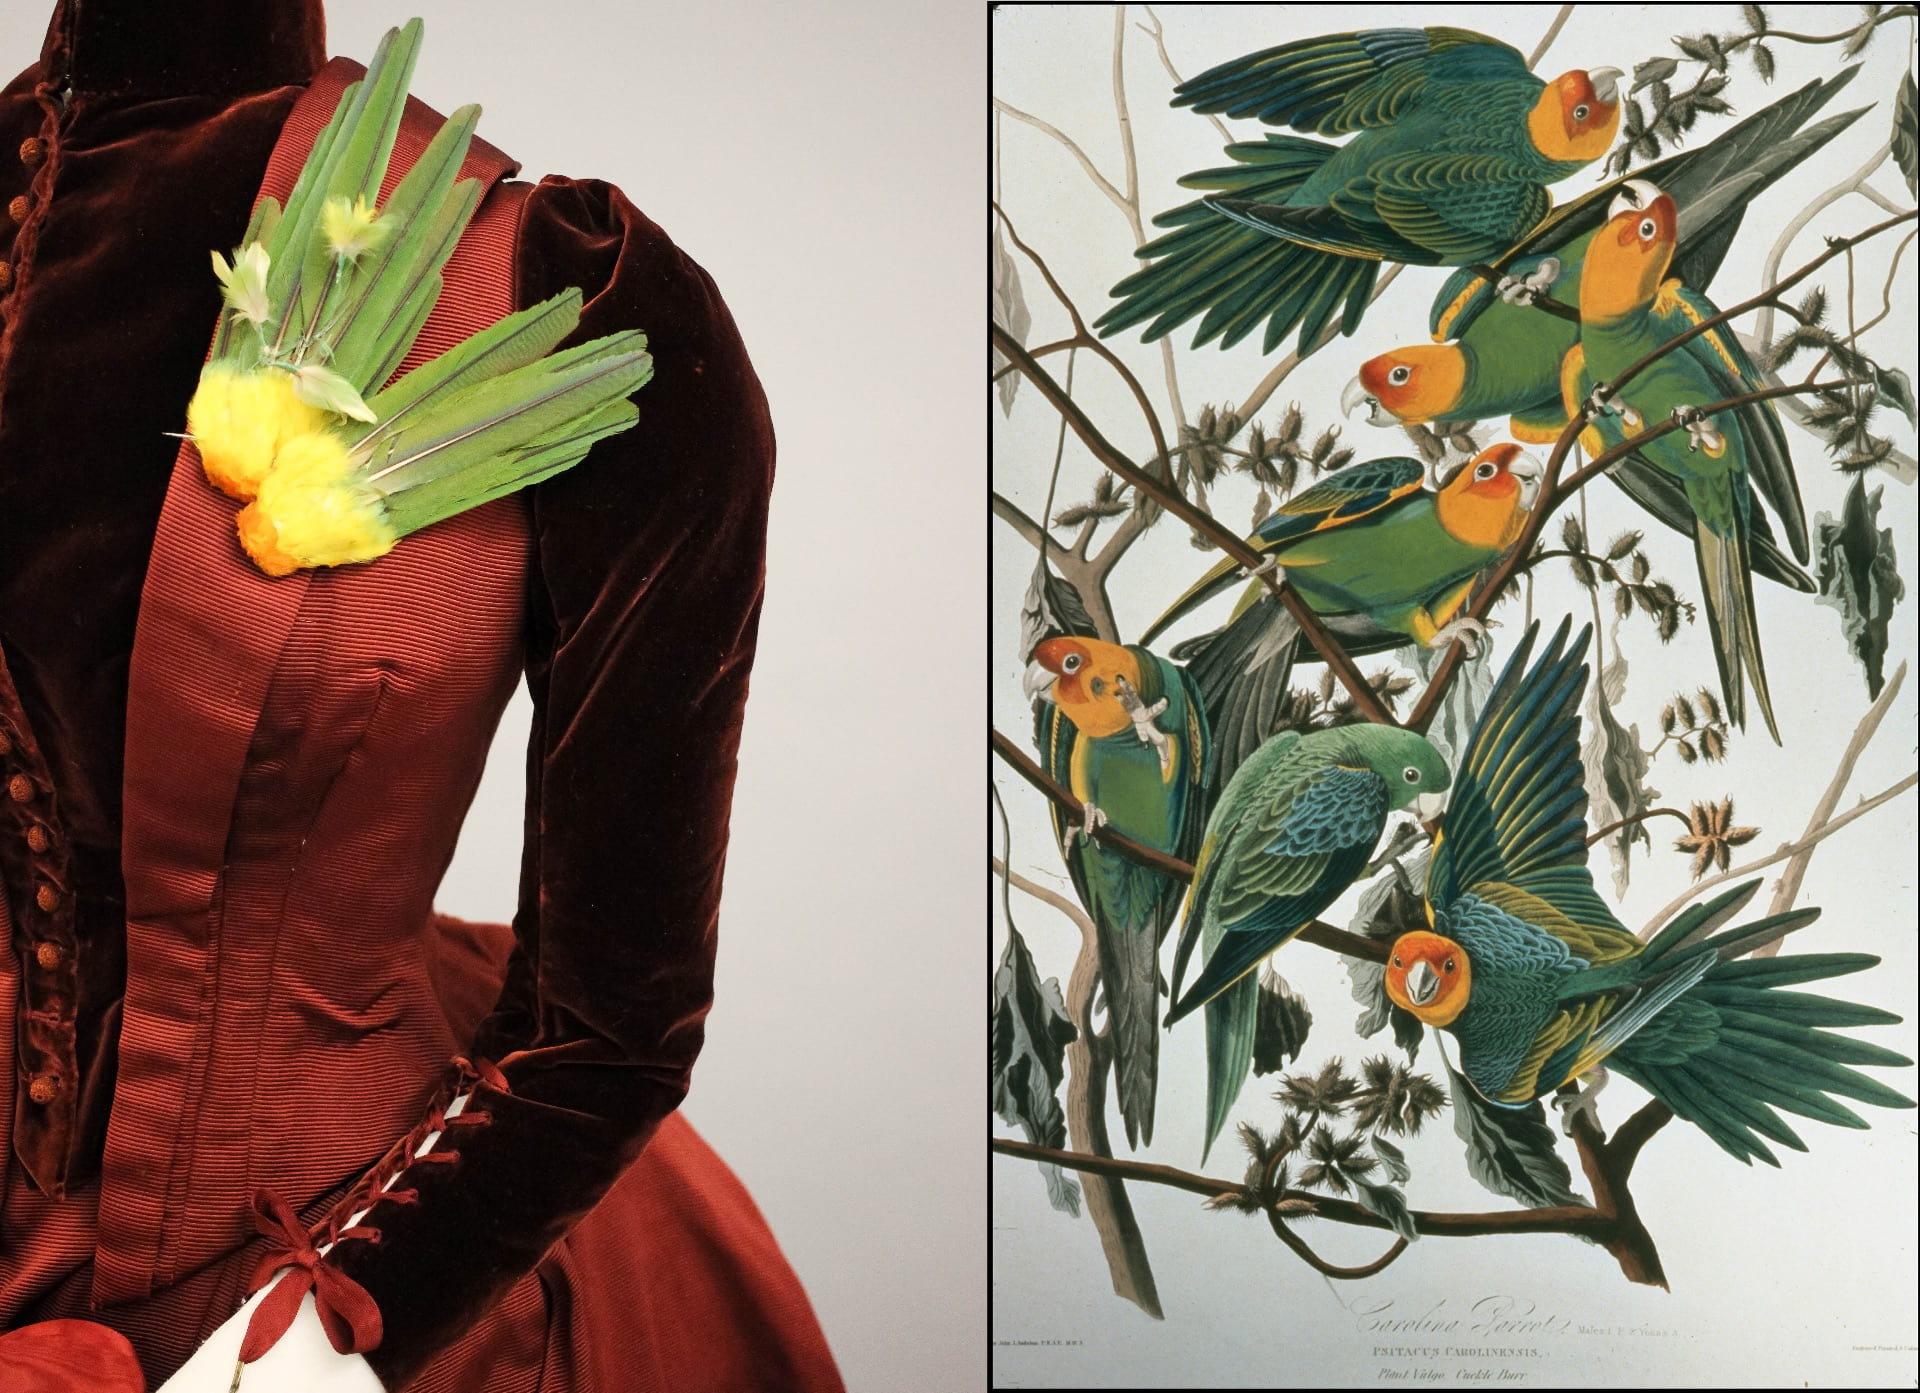 """Left: Brooch made of tails and scalps from the now-extinct Carolina Parakeet, displayed on a late 1880s walking dress. Photo by Grace Anderson. Right: Illustration of Carolina Parakeets by John James Audubon, 1827. Originally published in """"The birds of America: from original drawings,"""" by J. J. Audubon. Image and digitization courtesy of the Division of Rare and Manuscript Collections, Cornell University Library (identifier: h999-005_8srgb)"""